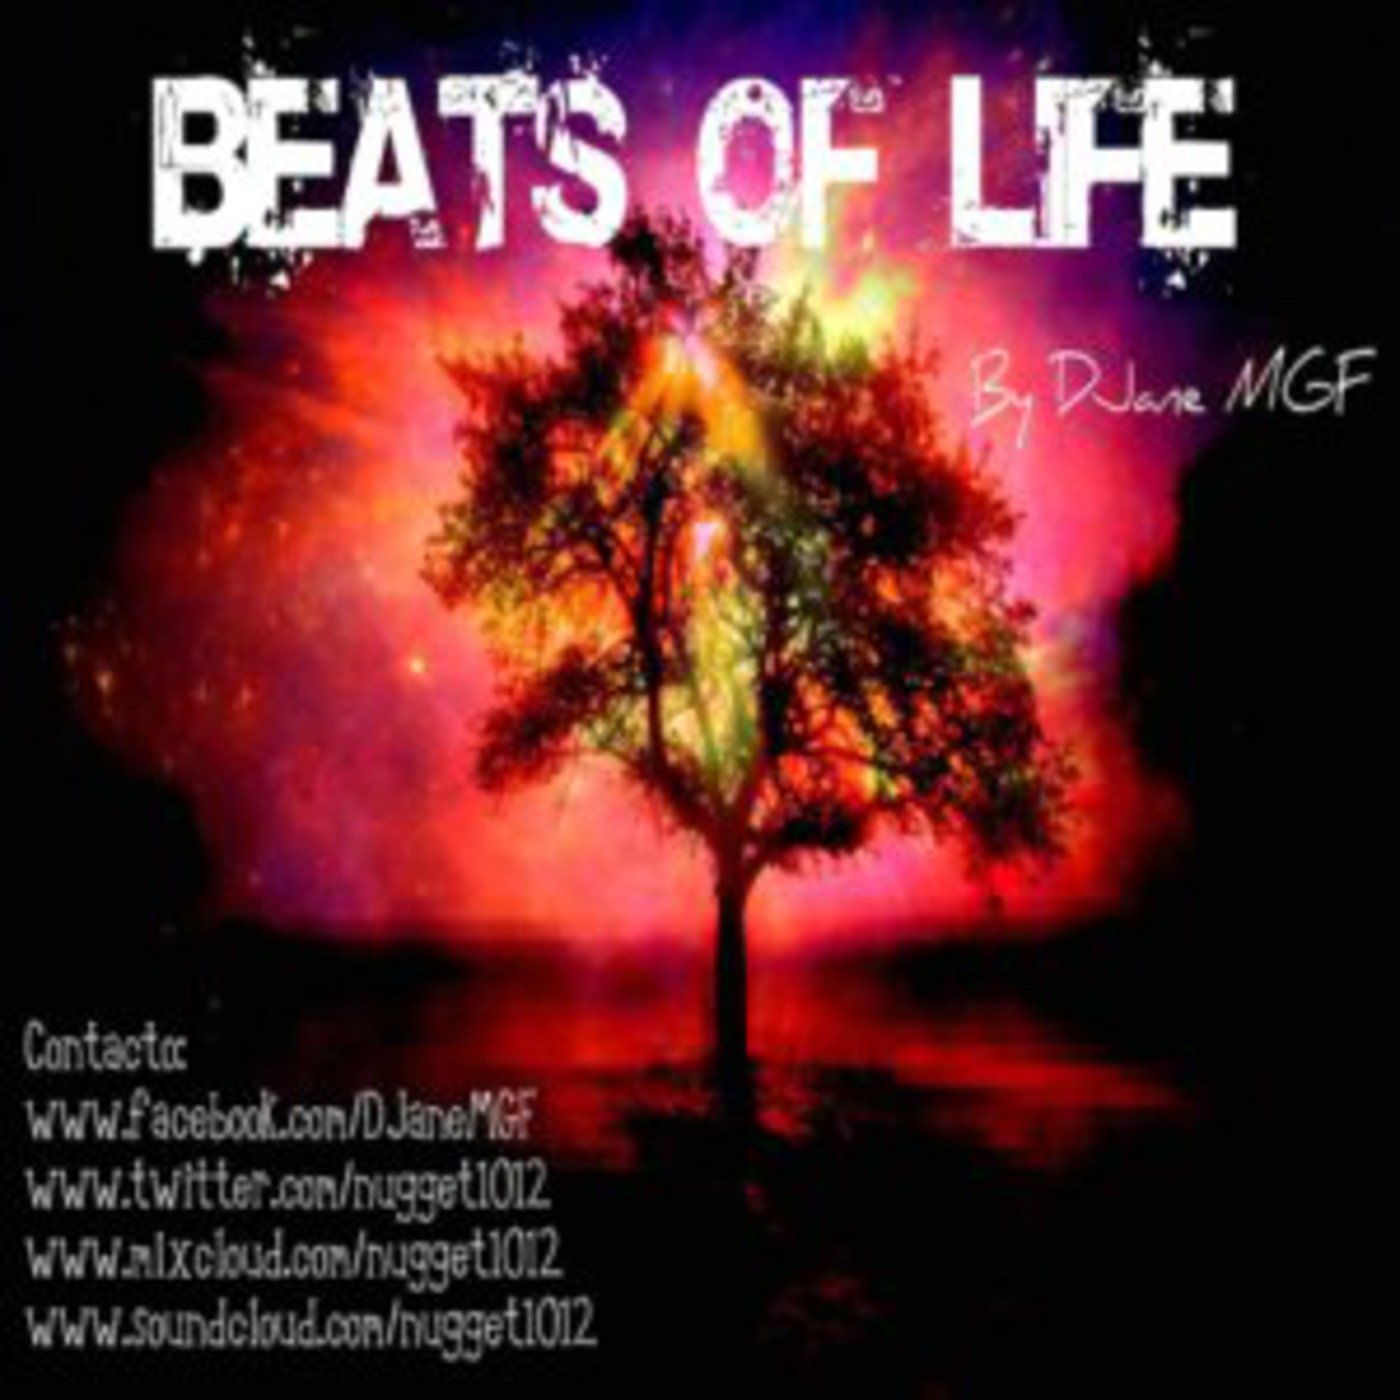 Beats Of Life By DJane MGF